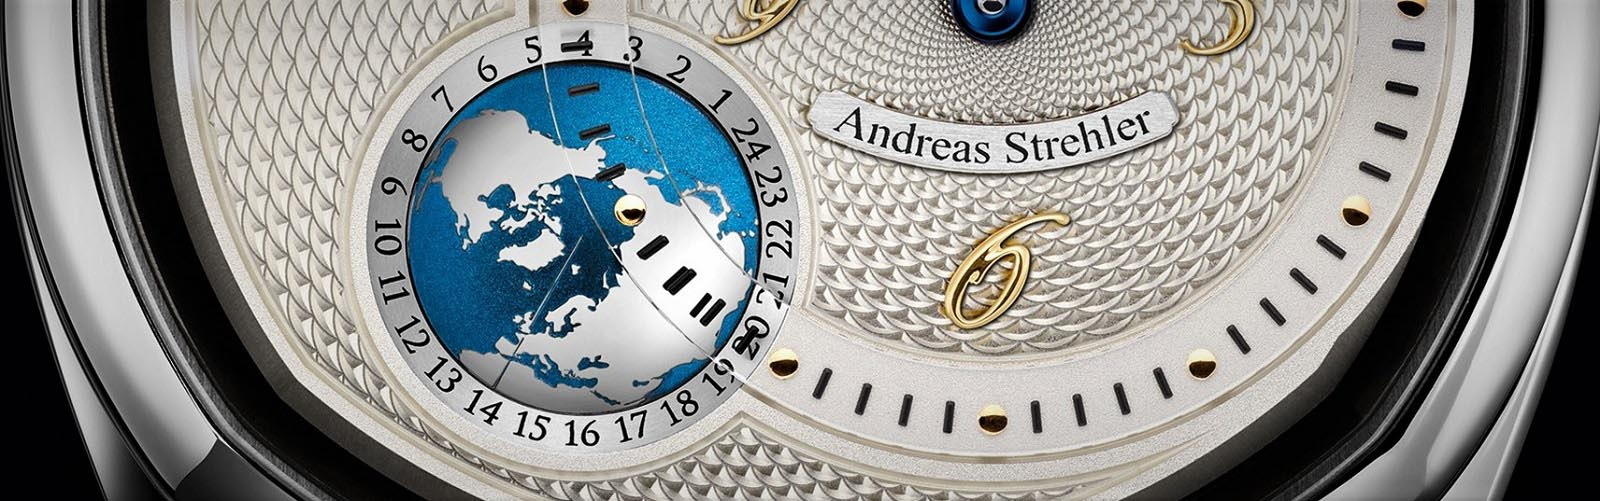 Andreas Strehler Time Zone Watch 22